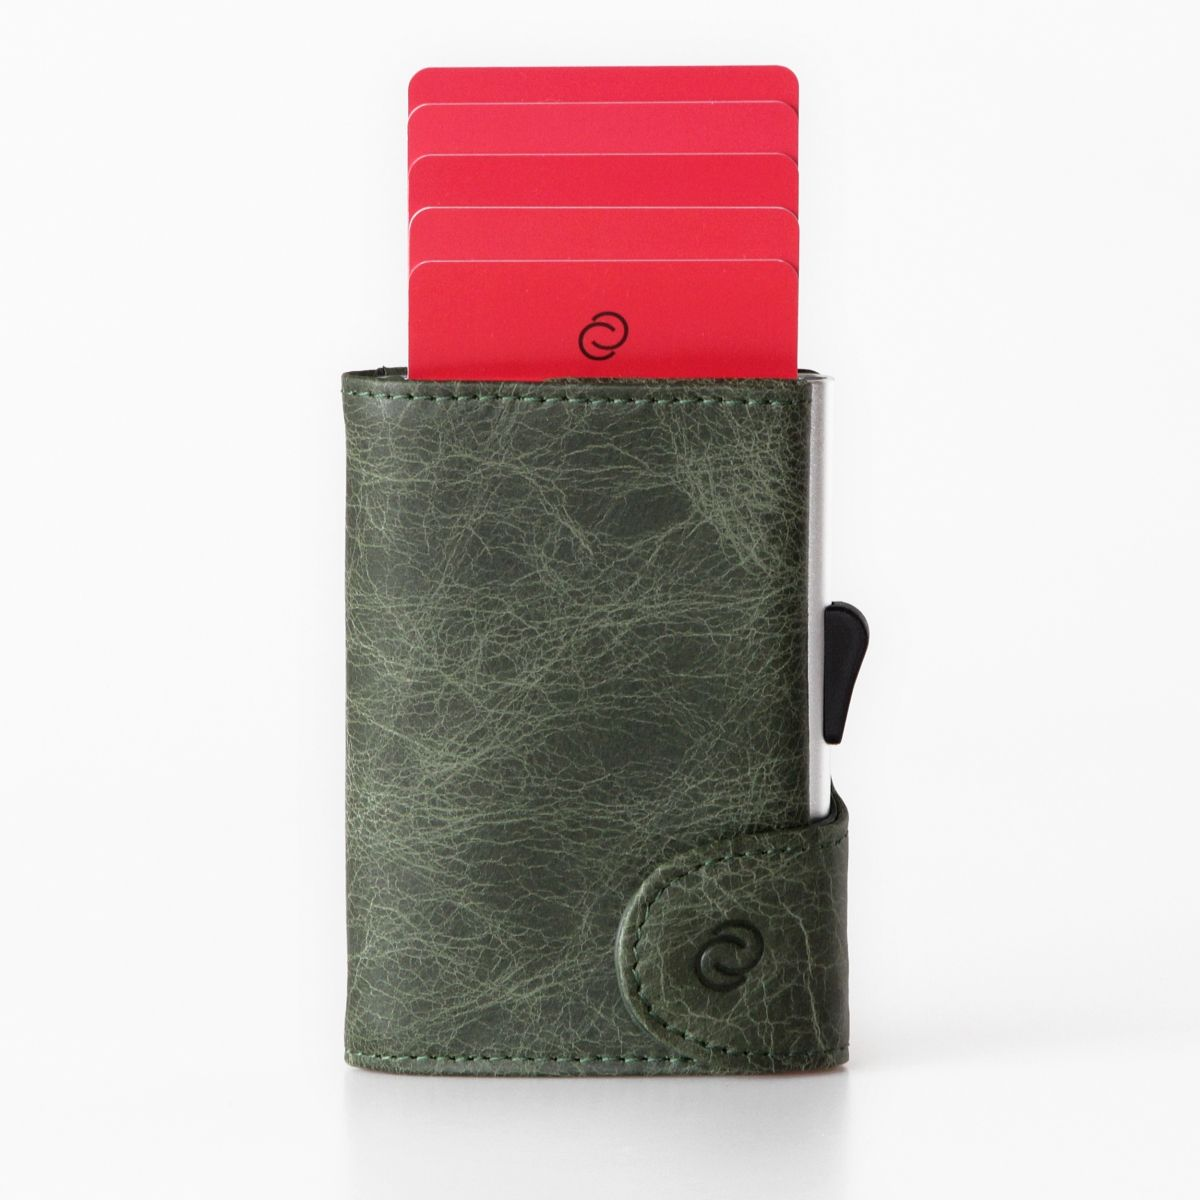 C-Secure Aluminum Card Holder with Genuine Leather - Green